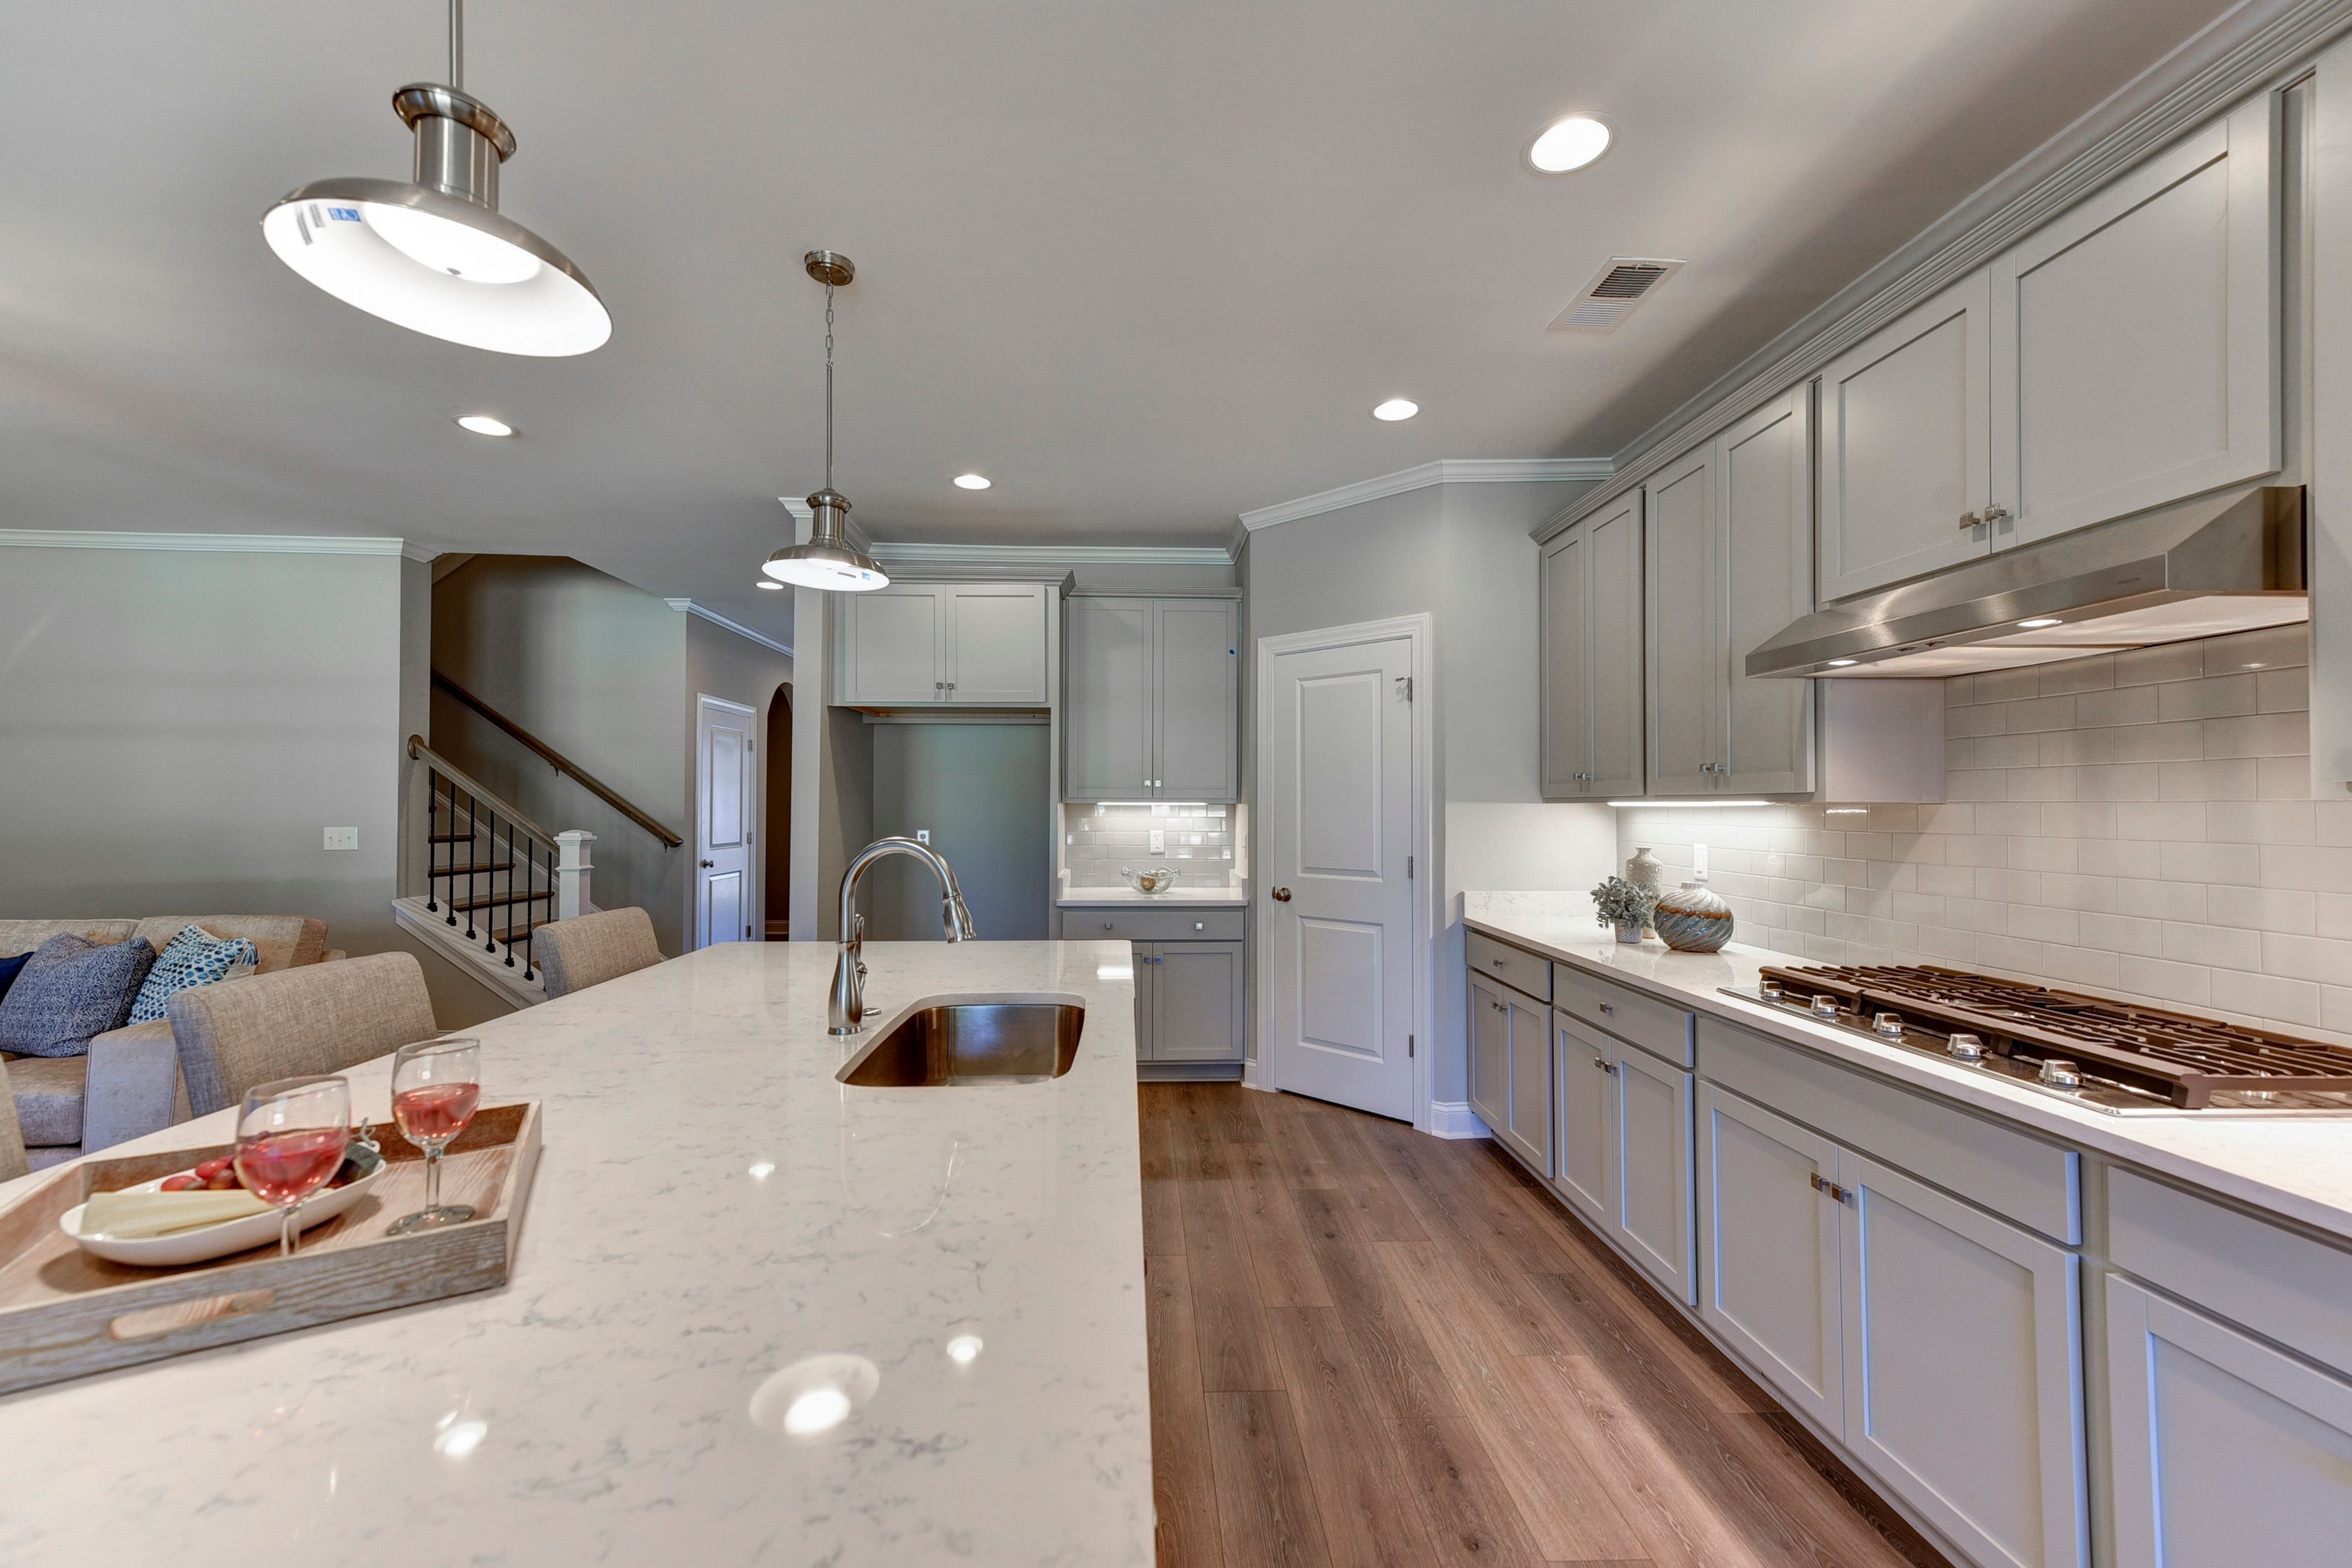 Kitchen featured in the Litchfield- NWV By Executive Construction Homes in Columbia, SC